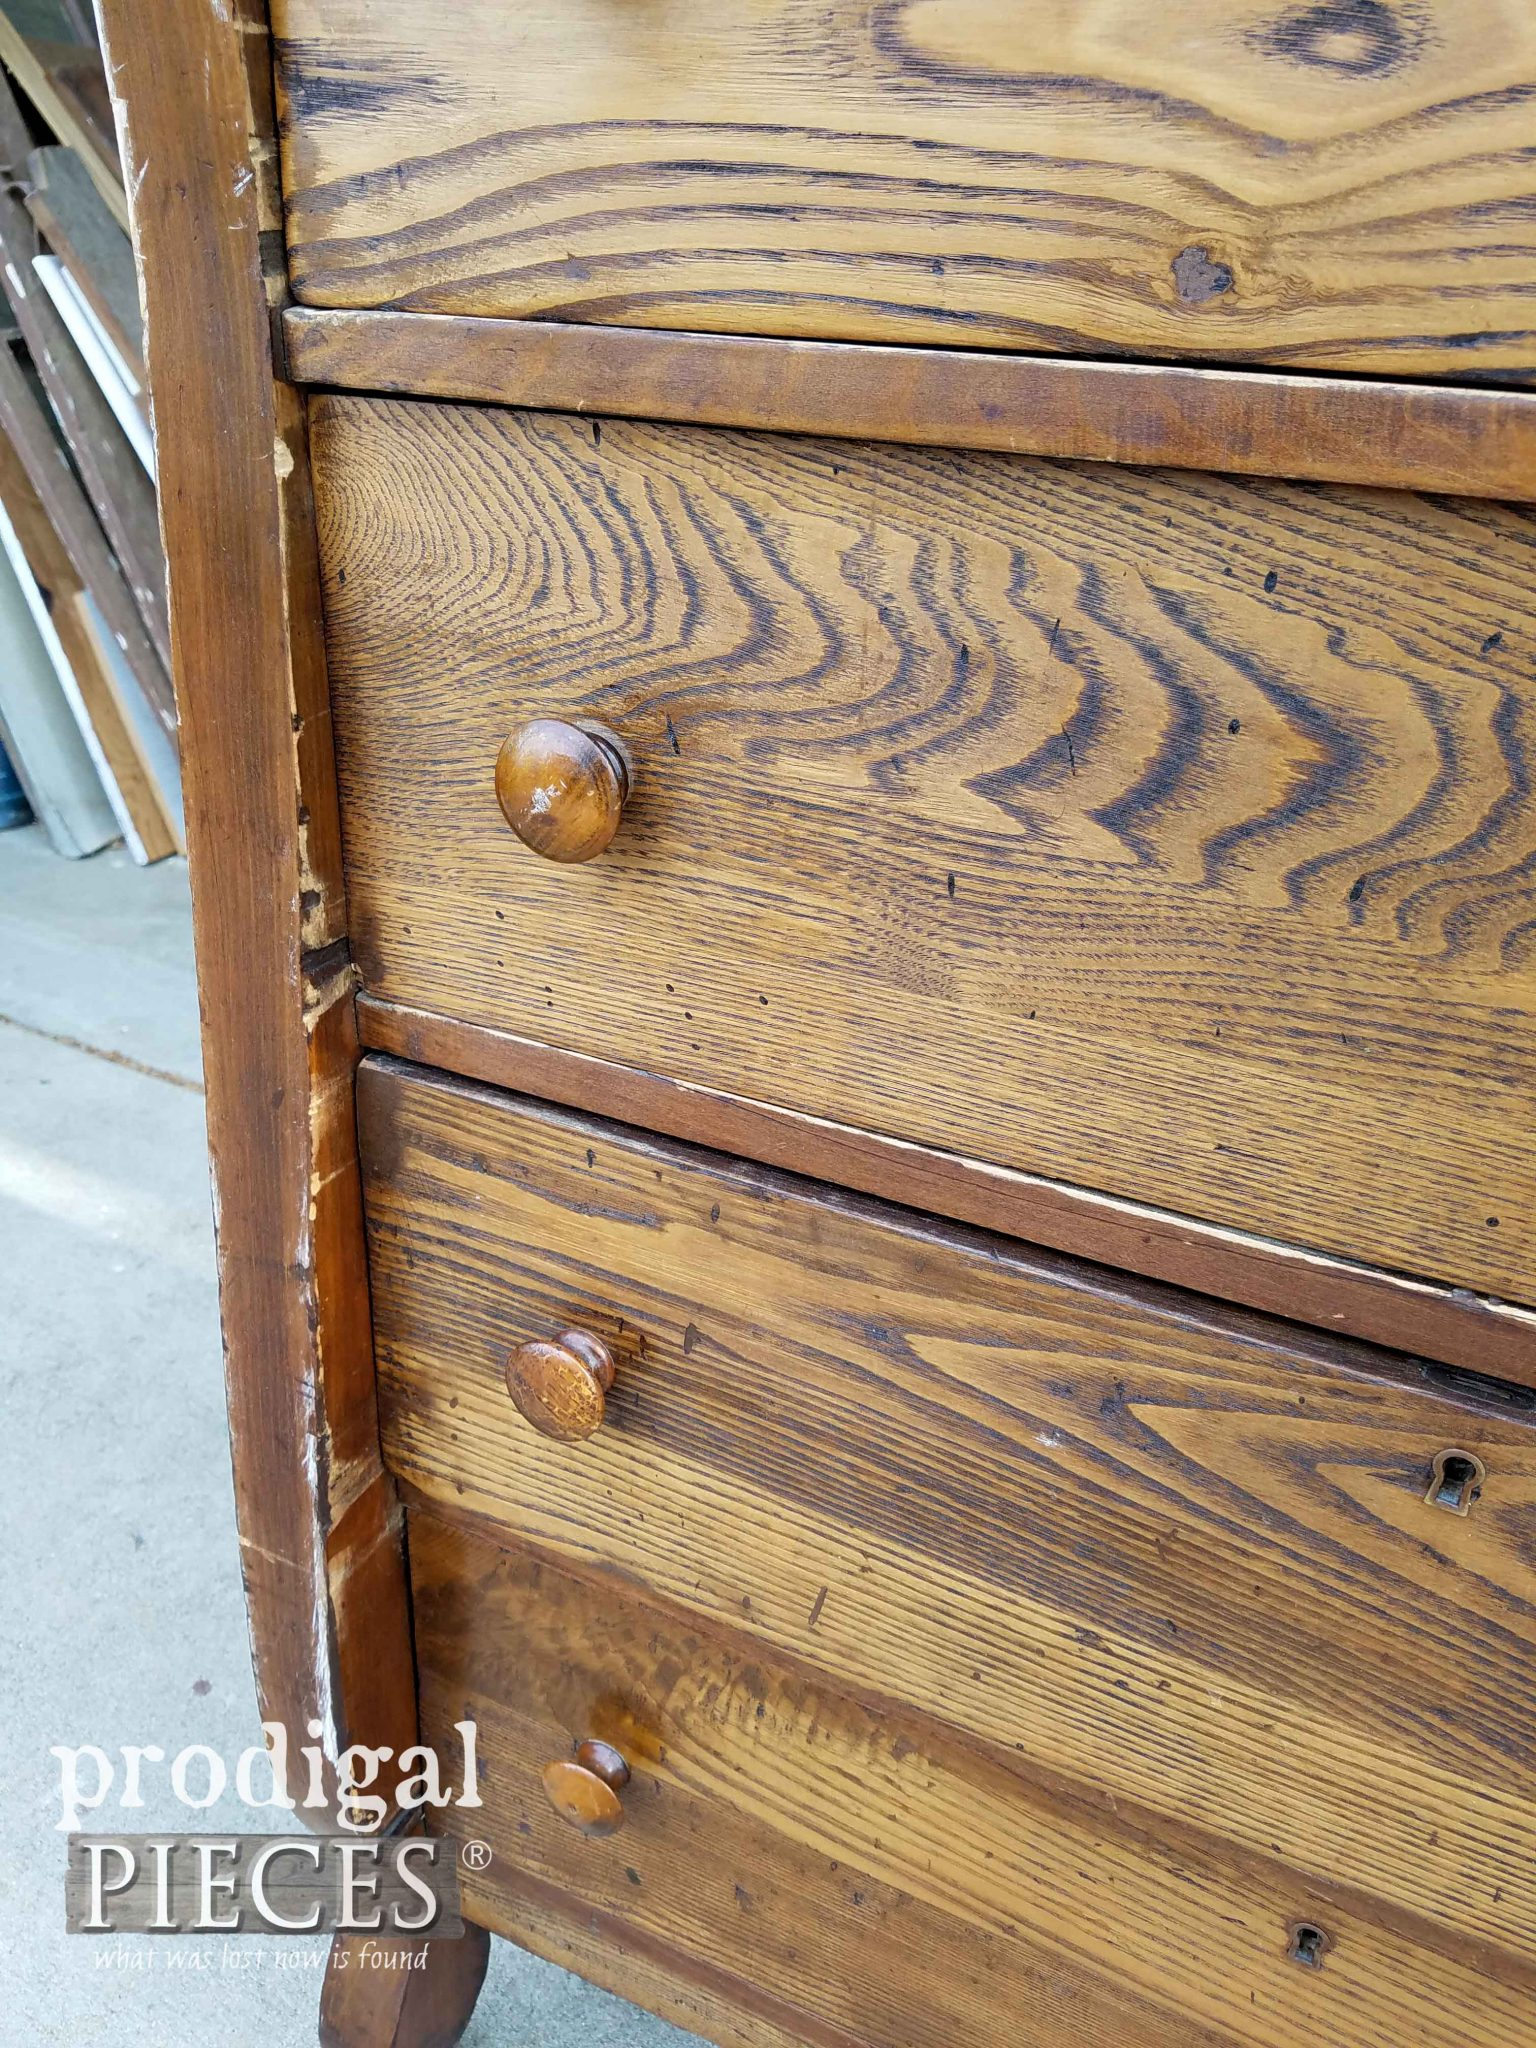 Close-Up of Antique Empire Chest Damage | prodigalpieces.com